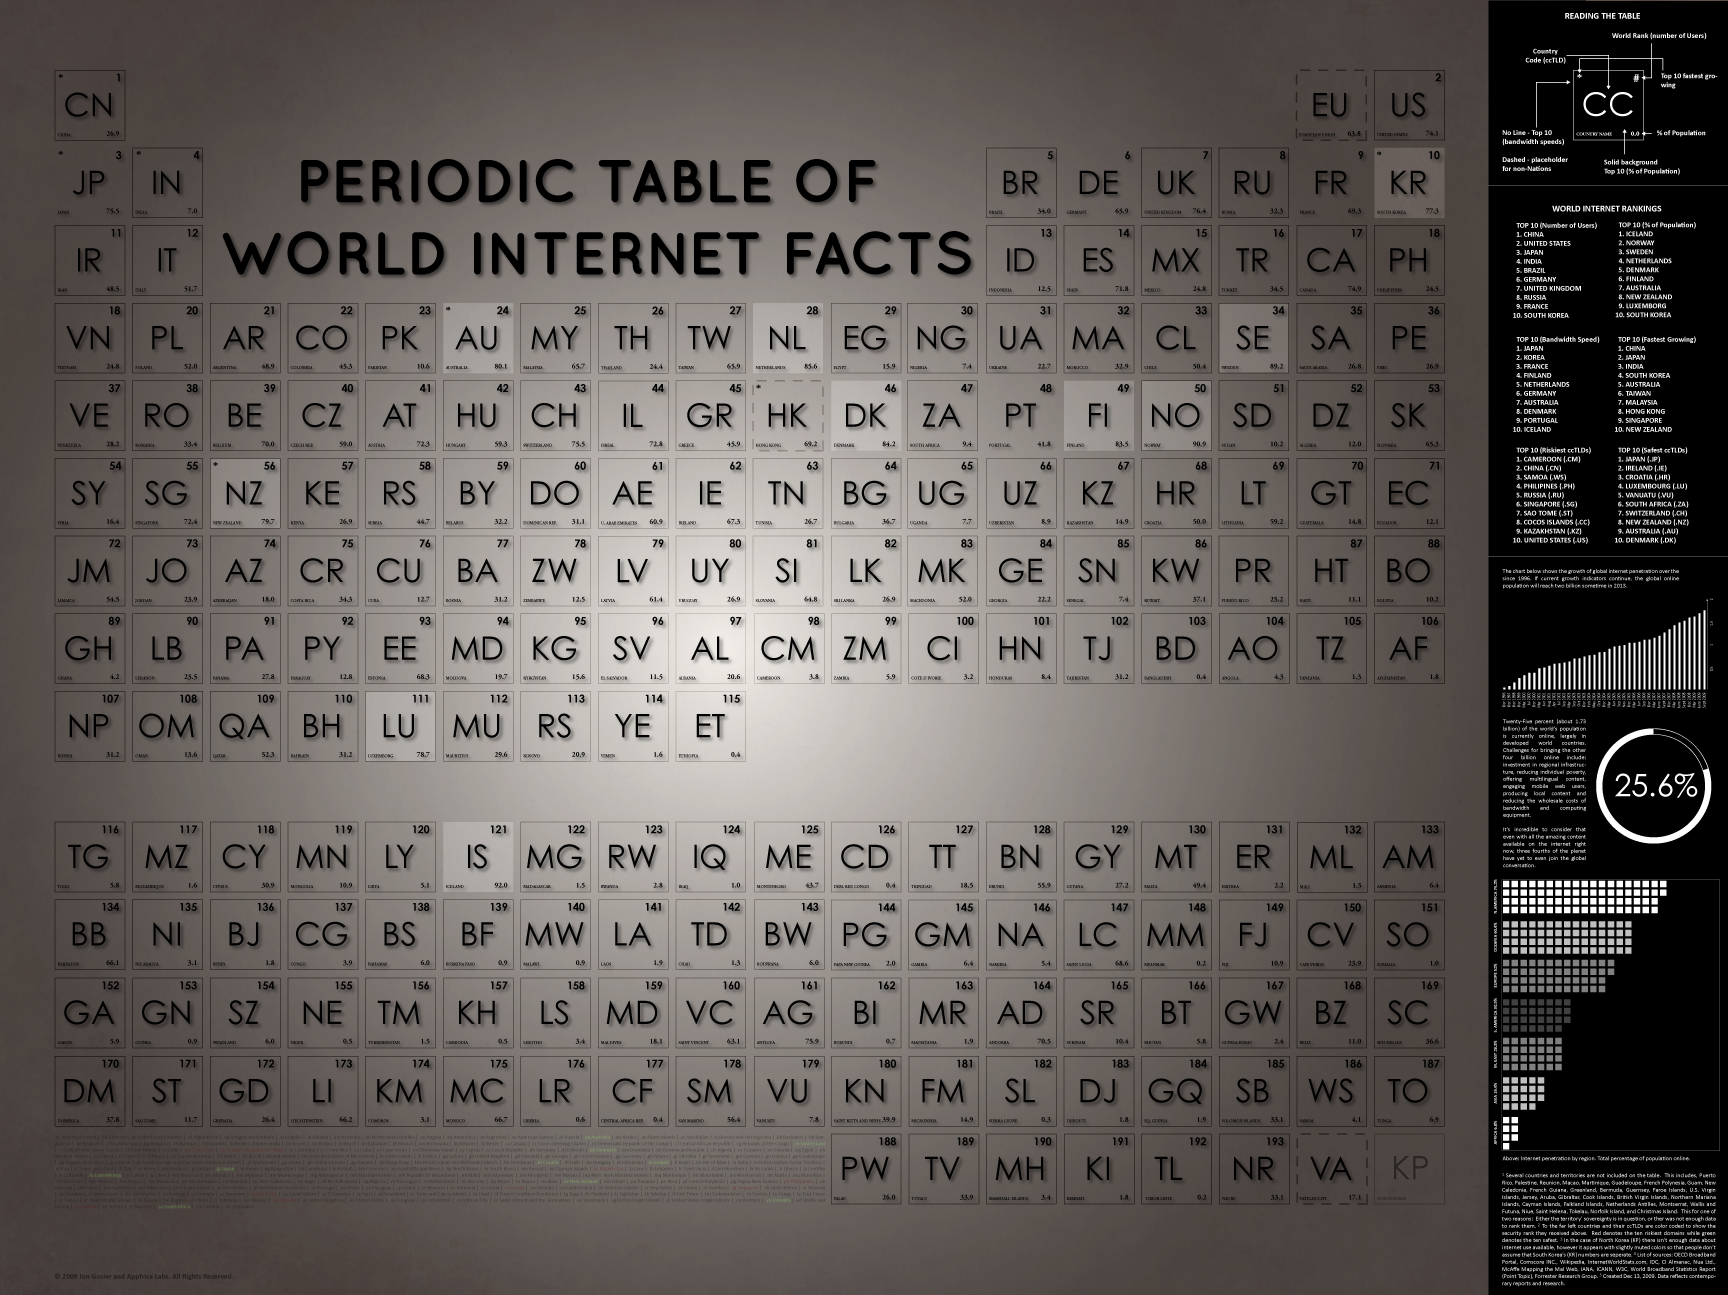 Periodic table st eutychus there have been a bunch of awesome periodic tables created for the internet this one is created about the internet heres the big version on flickr gamestrikefo Image collections